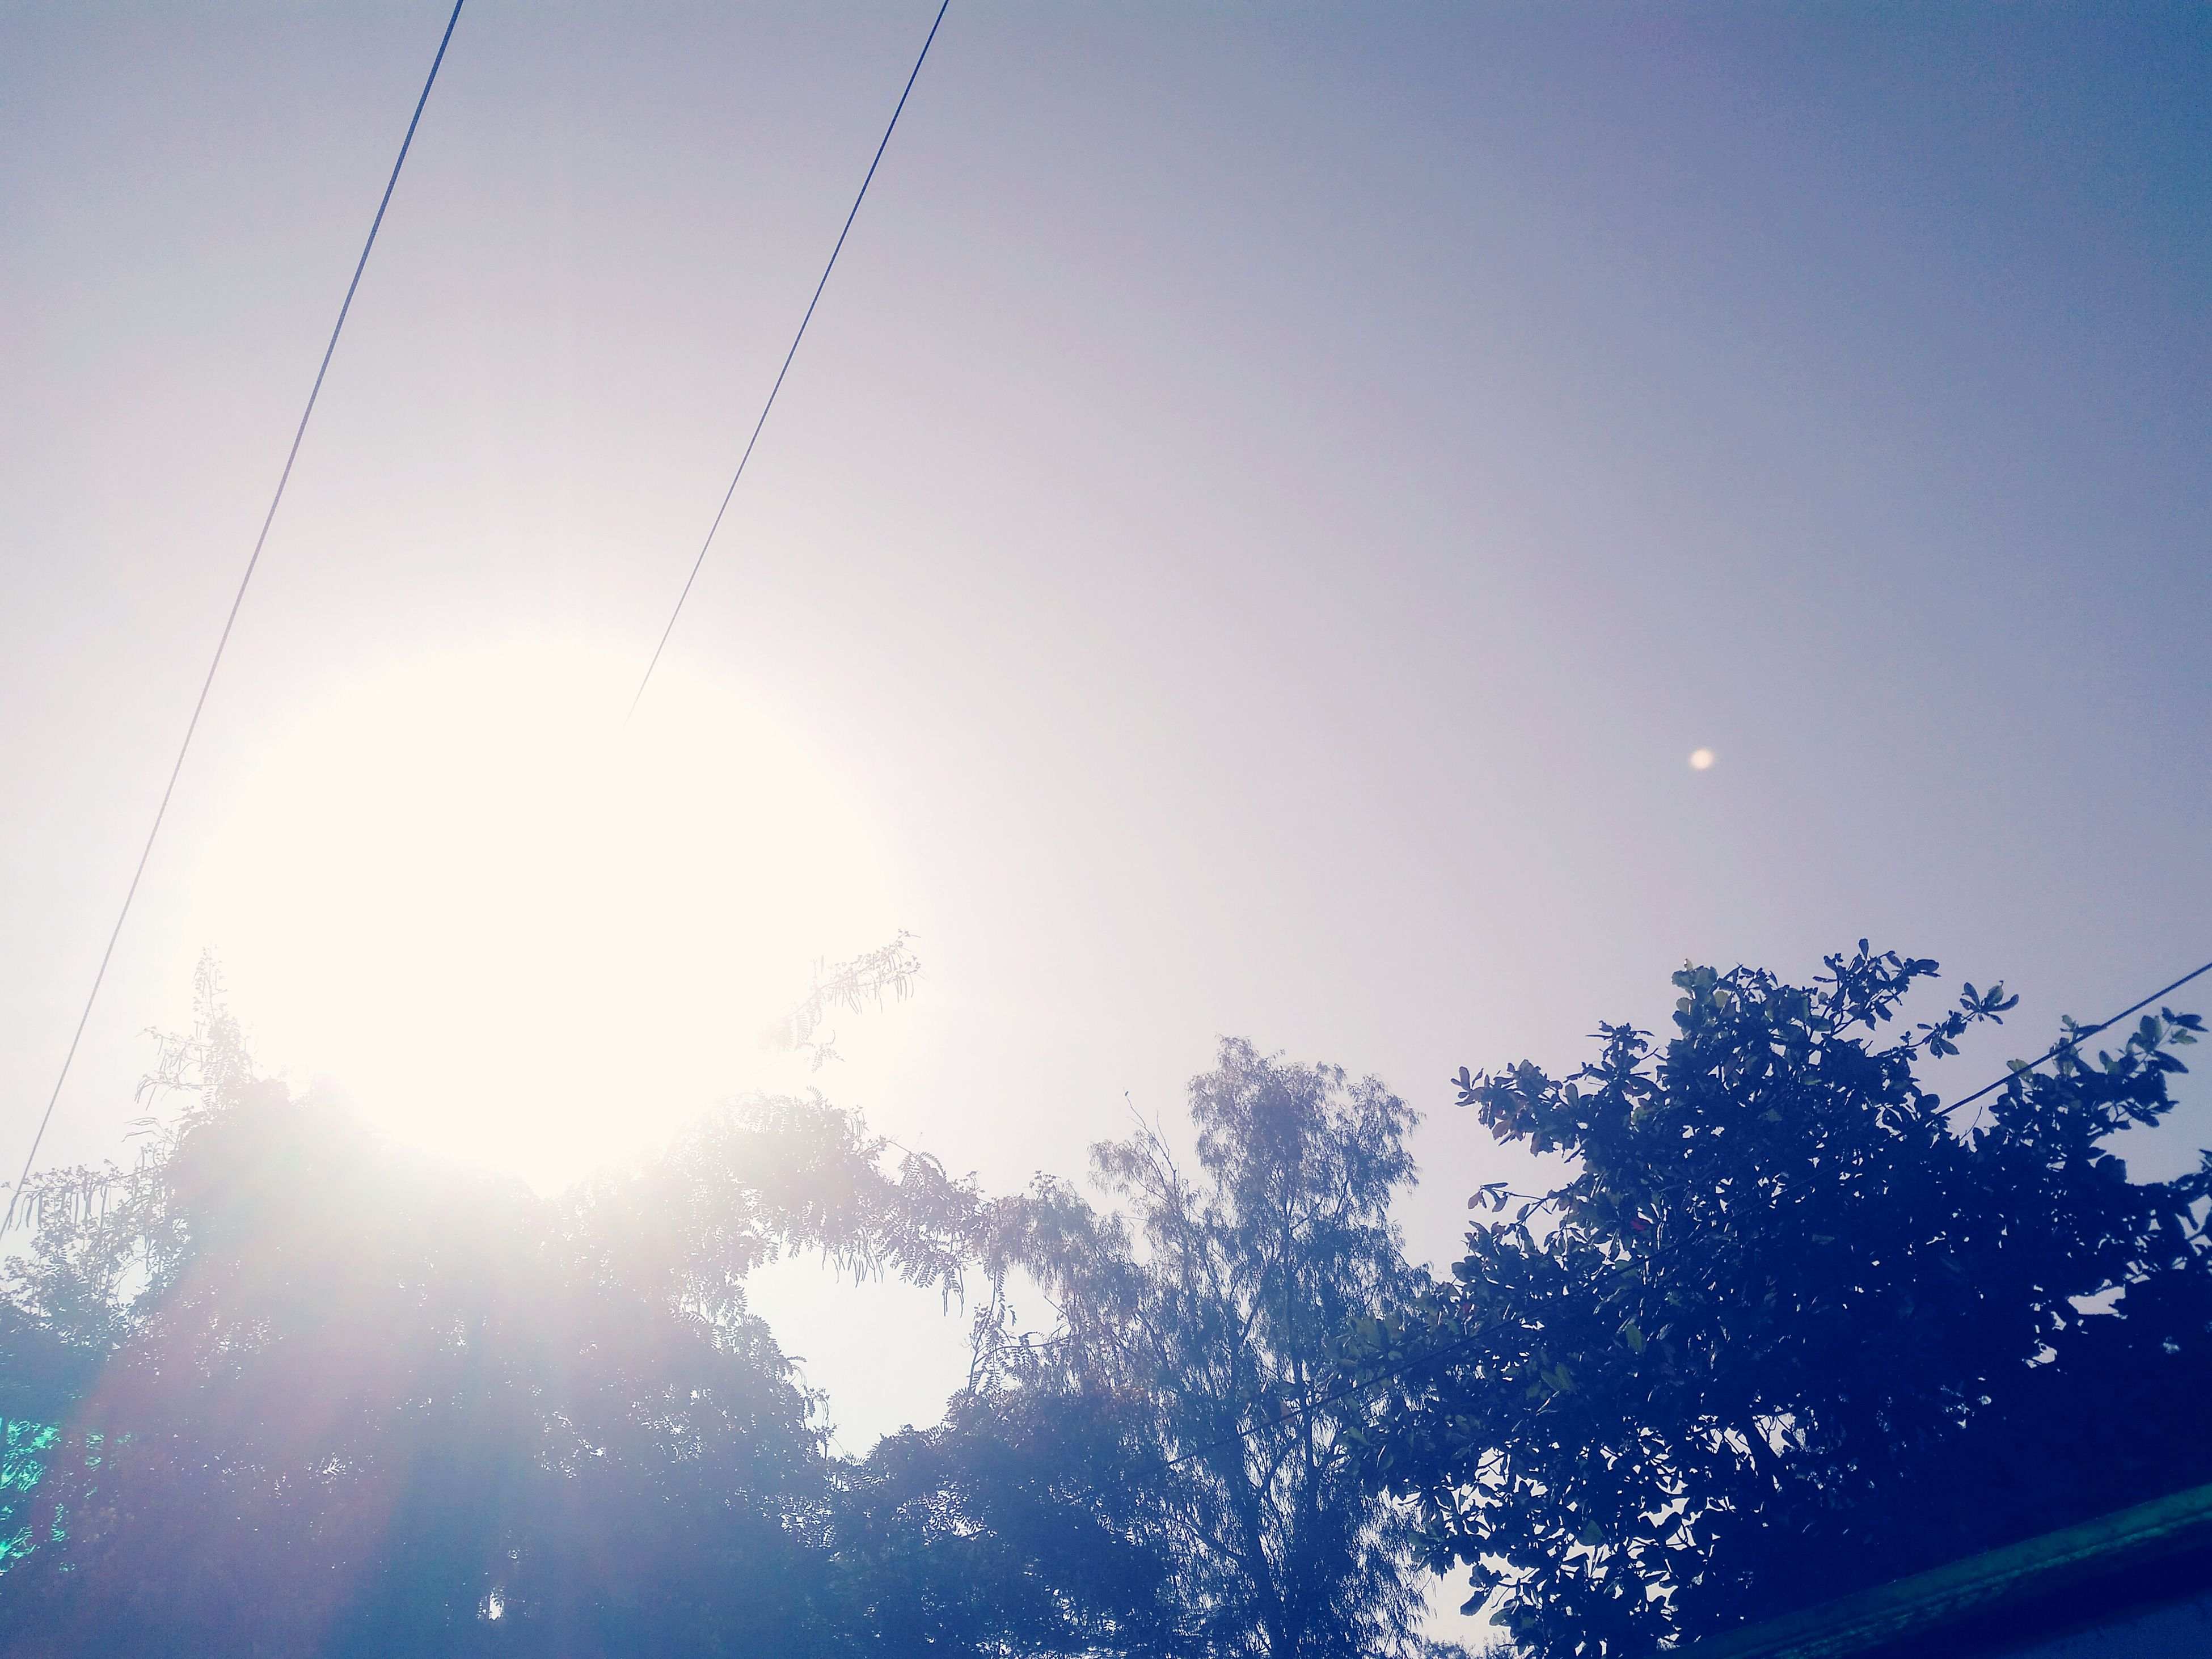 sun, low angle view, sunbeam, tree, lens flare, clear sky, sunlight, silhouette, bright, nature, sky, beauty in nature, tranquility, branch, street light, outdoors, sunny, growth, no people, day